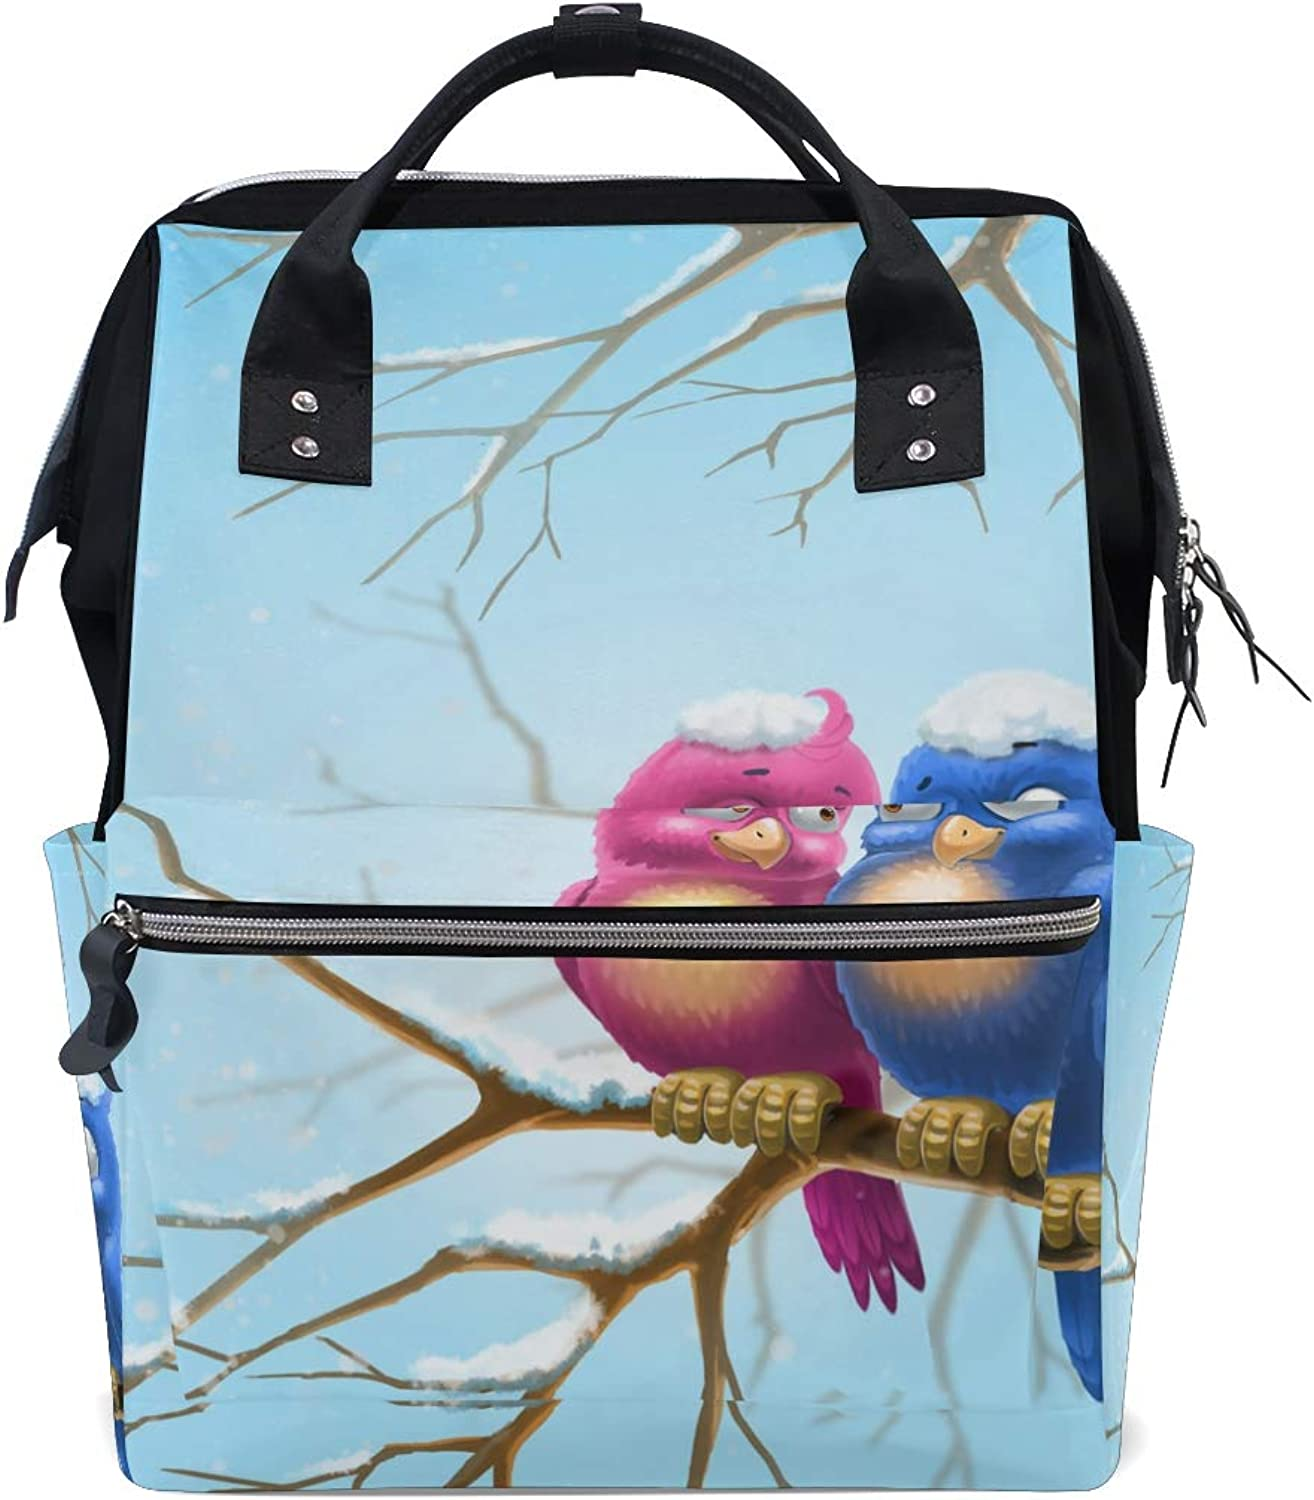 ColourLife Diaper bag Backpack Birds In The Branch Tote Bag Casual Daypack Multifunctional Nappy Bags